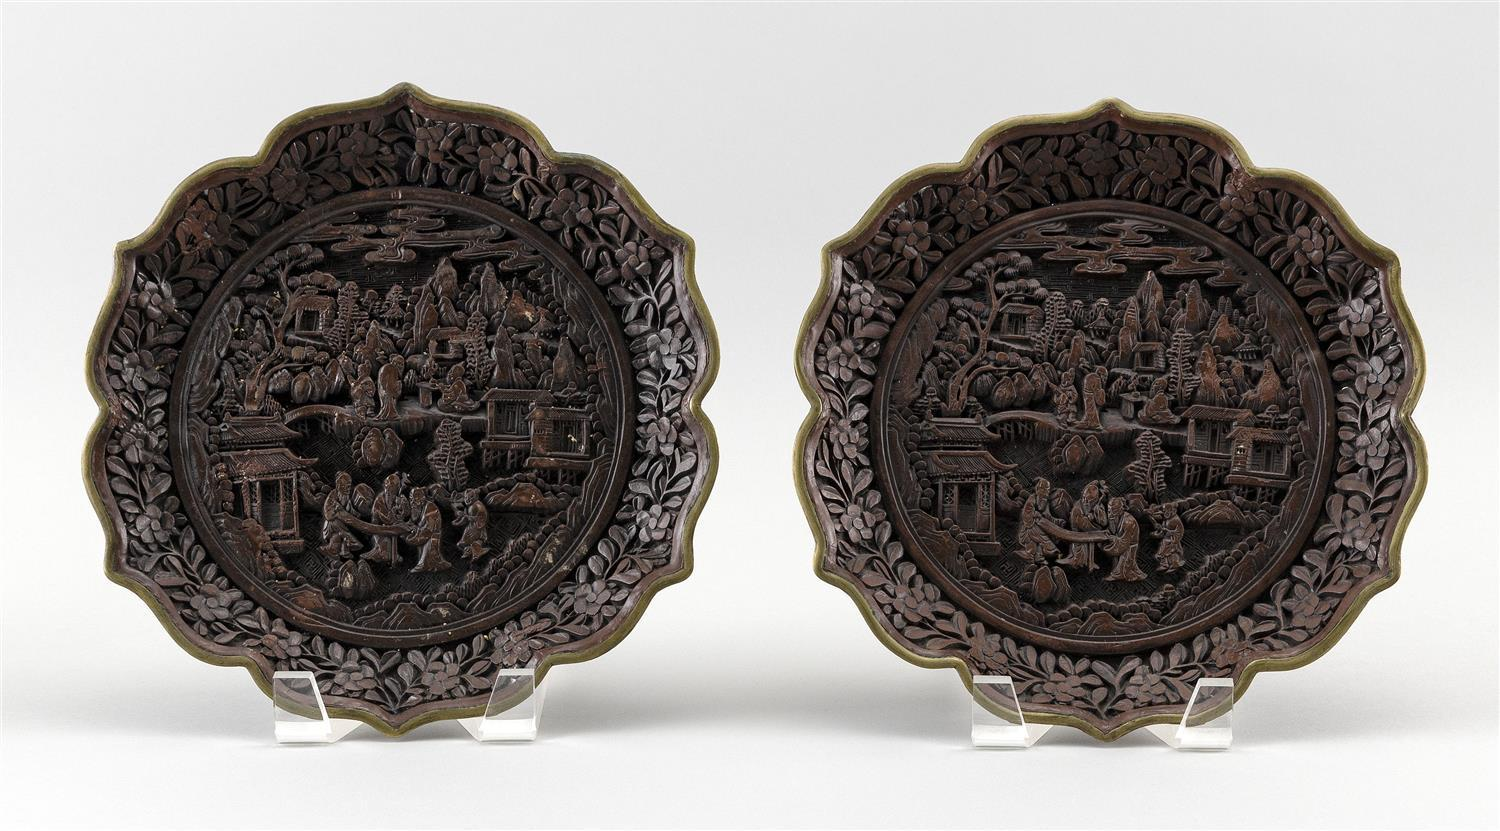 PAIR OF CHINESE DARK RED CINNABAR PLATES Scalloped edges trimmed in bronze. Central figural landscape. Six-character Qianlong mark o...